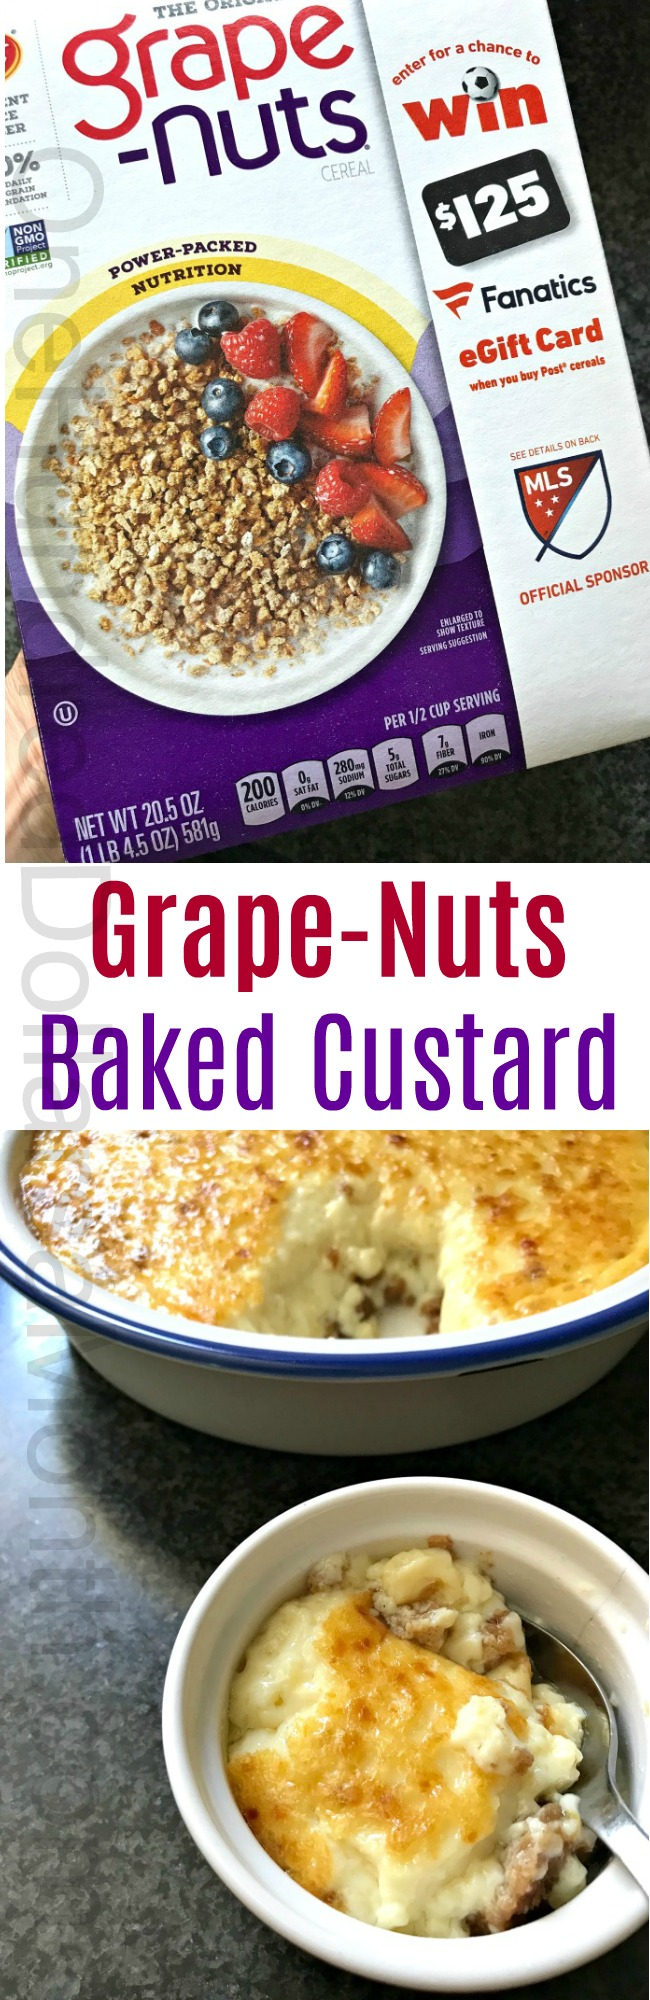 Grape-Nuts Baked Custard Recipe